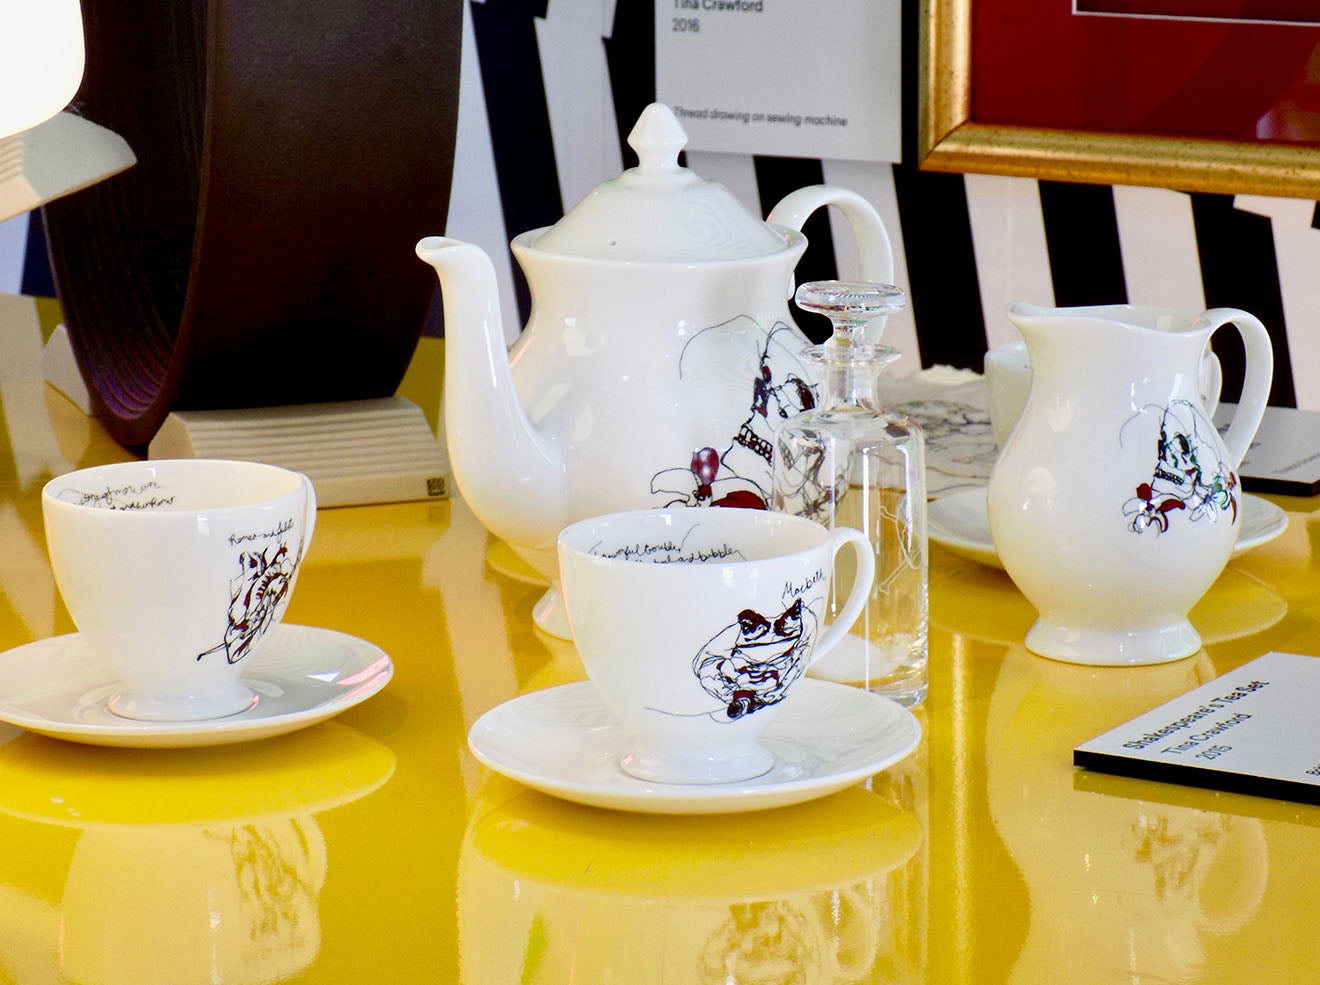 Shakespeare tea set designed by Tina Crawford